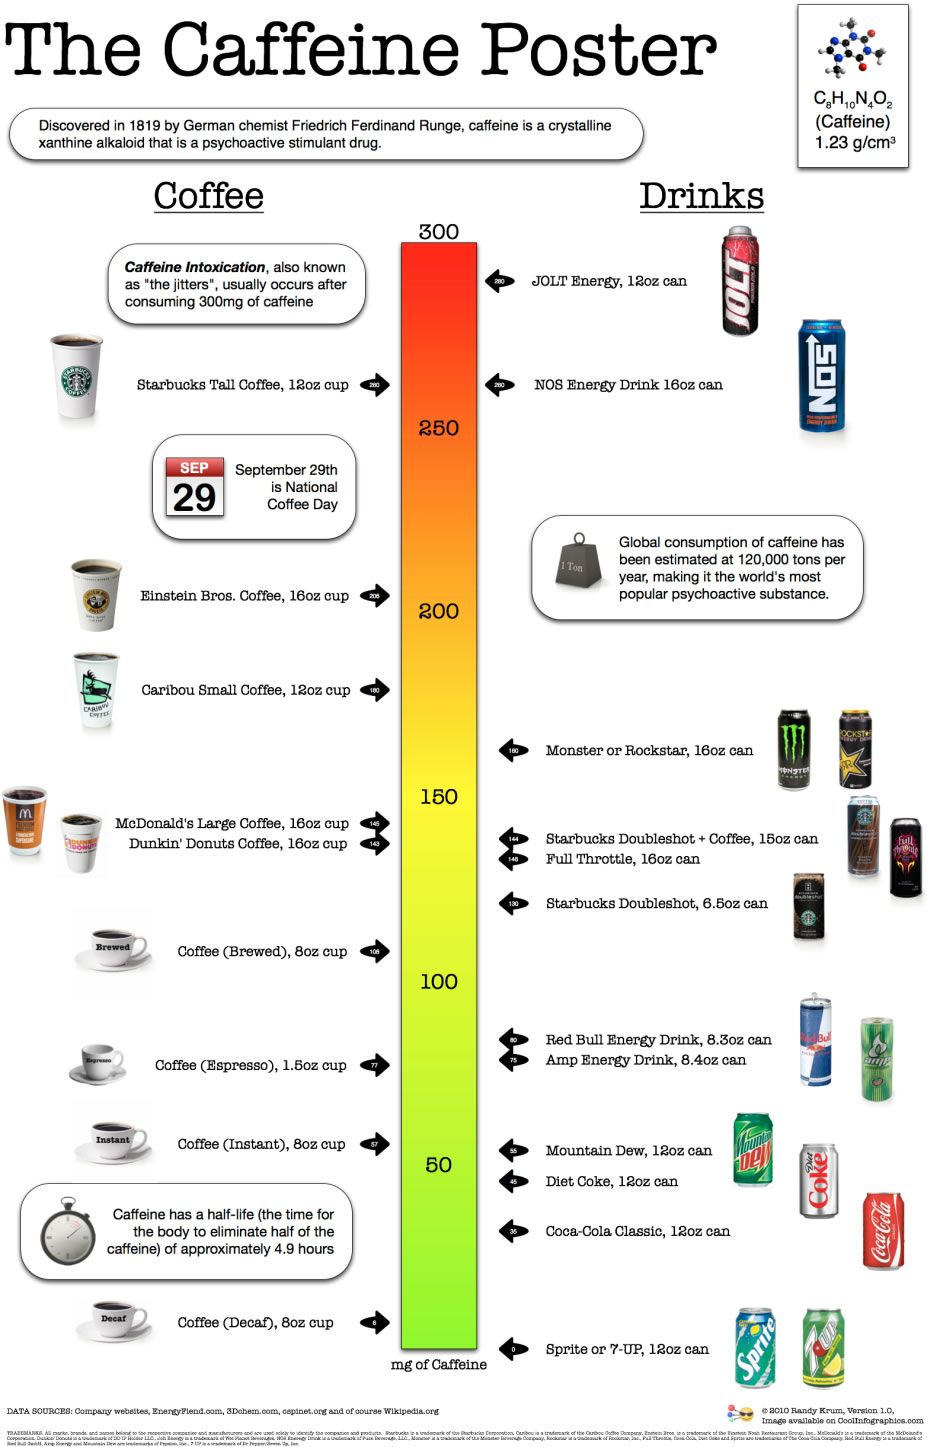 Quick Chart Compare Caffeine Amounts So I Know How Much My Bf Is Taking In With Those Energy Drinks